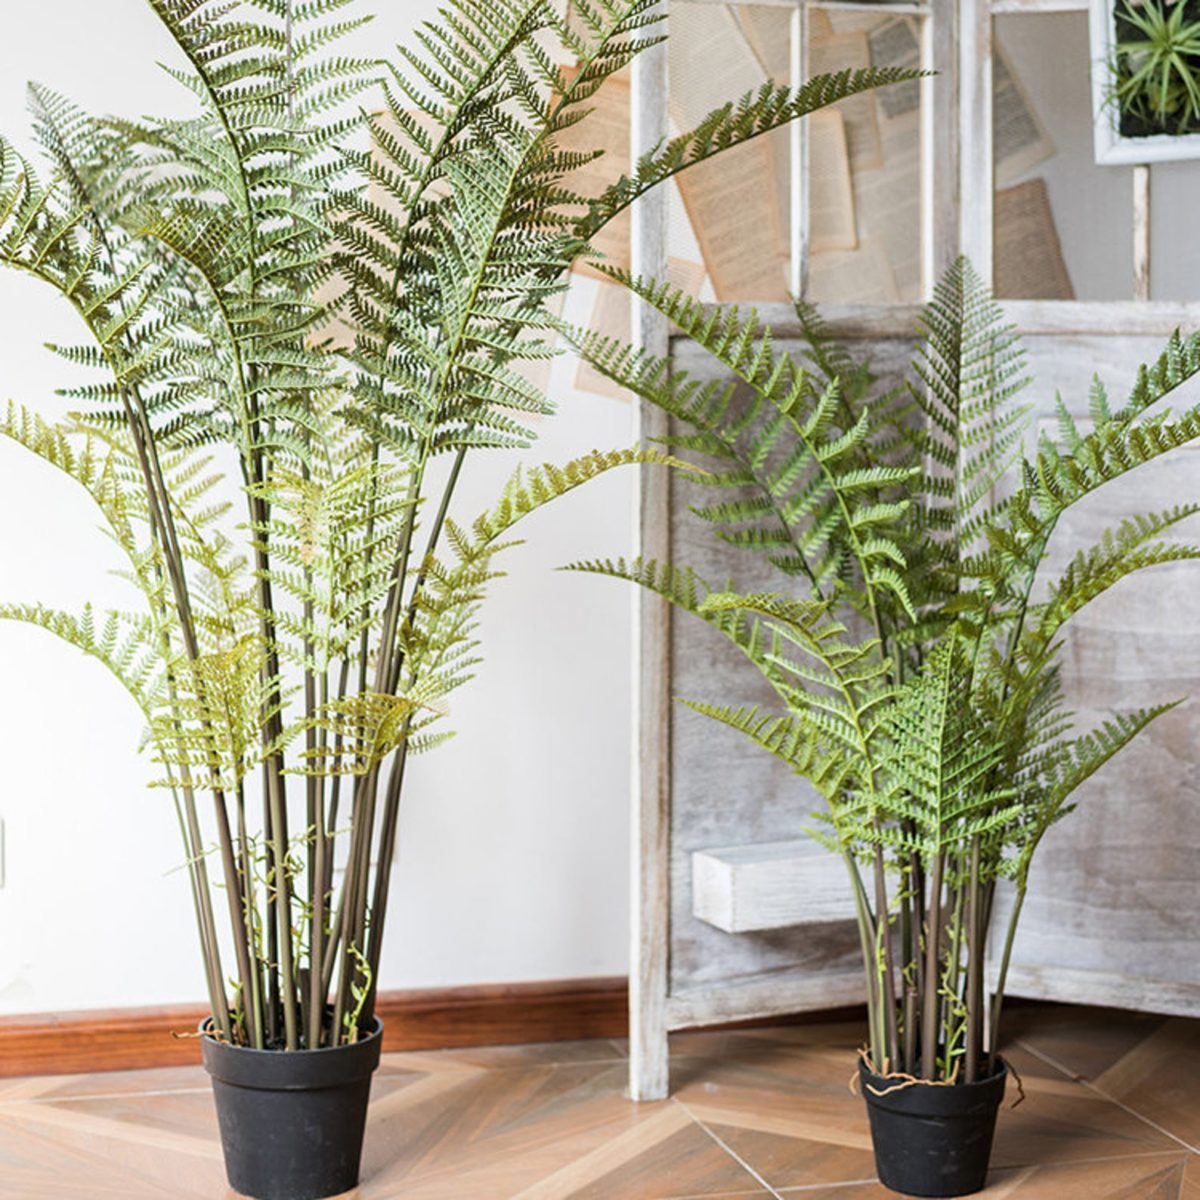 the look of plants without the care, here are 8 of the best fake plants from etsy